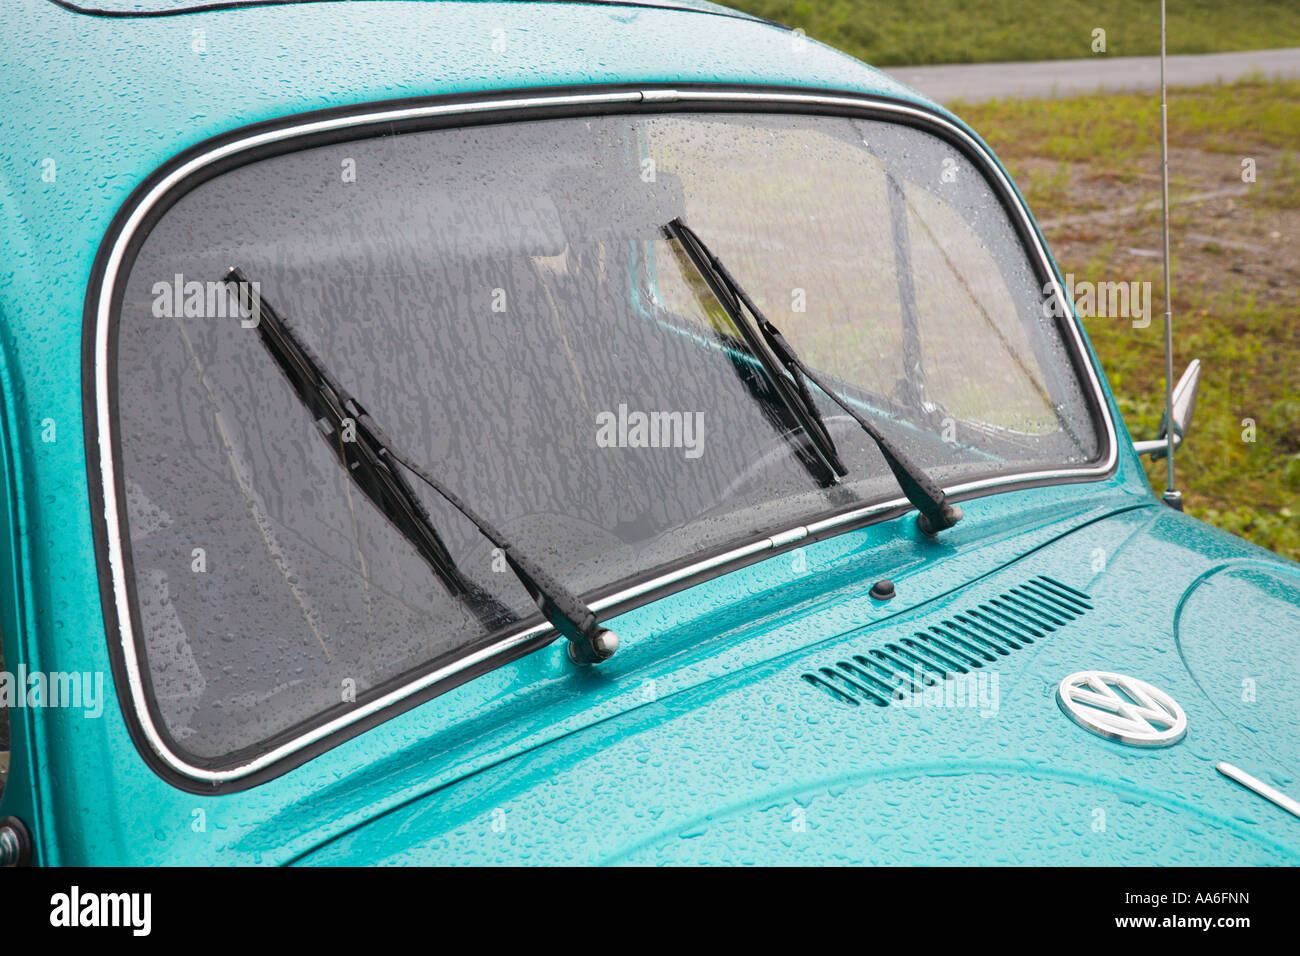 A VW Beetle standing in the rain - Stock Image